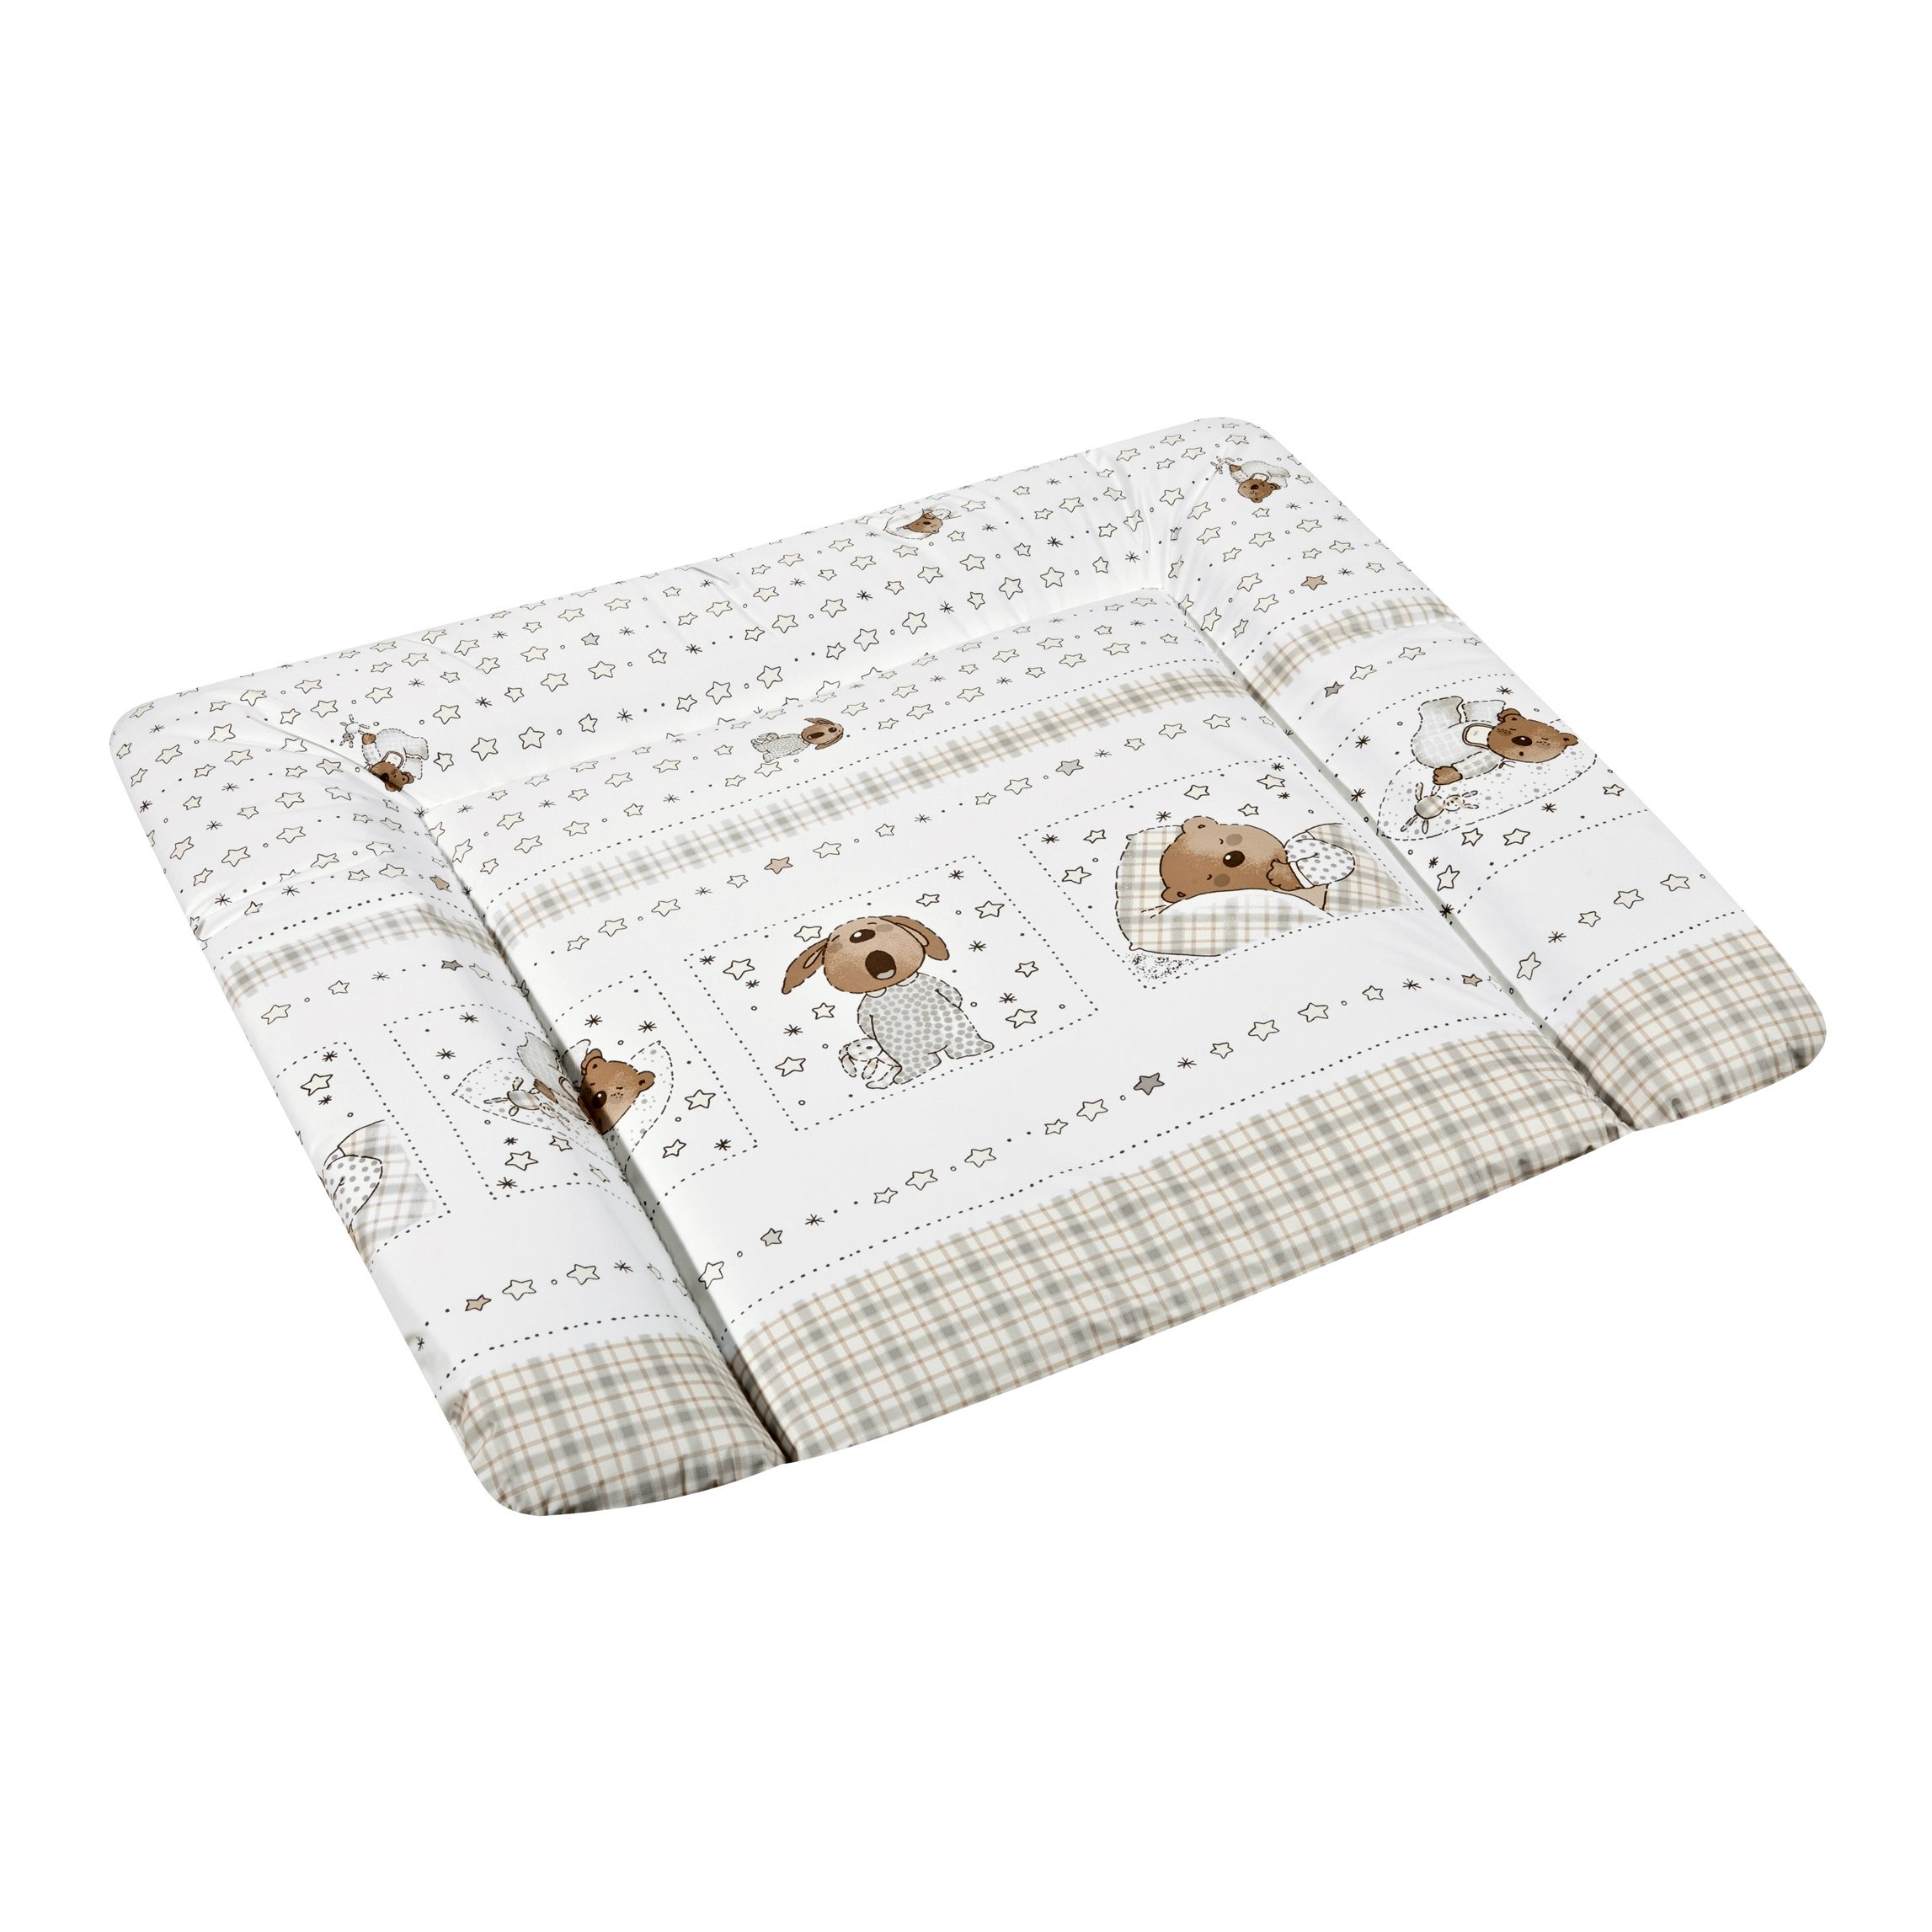 Wickelauflage Sweet Dreams Softy – Weiß mit Bärchenmotiven